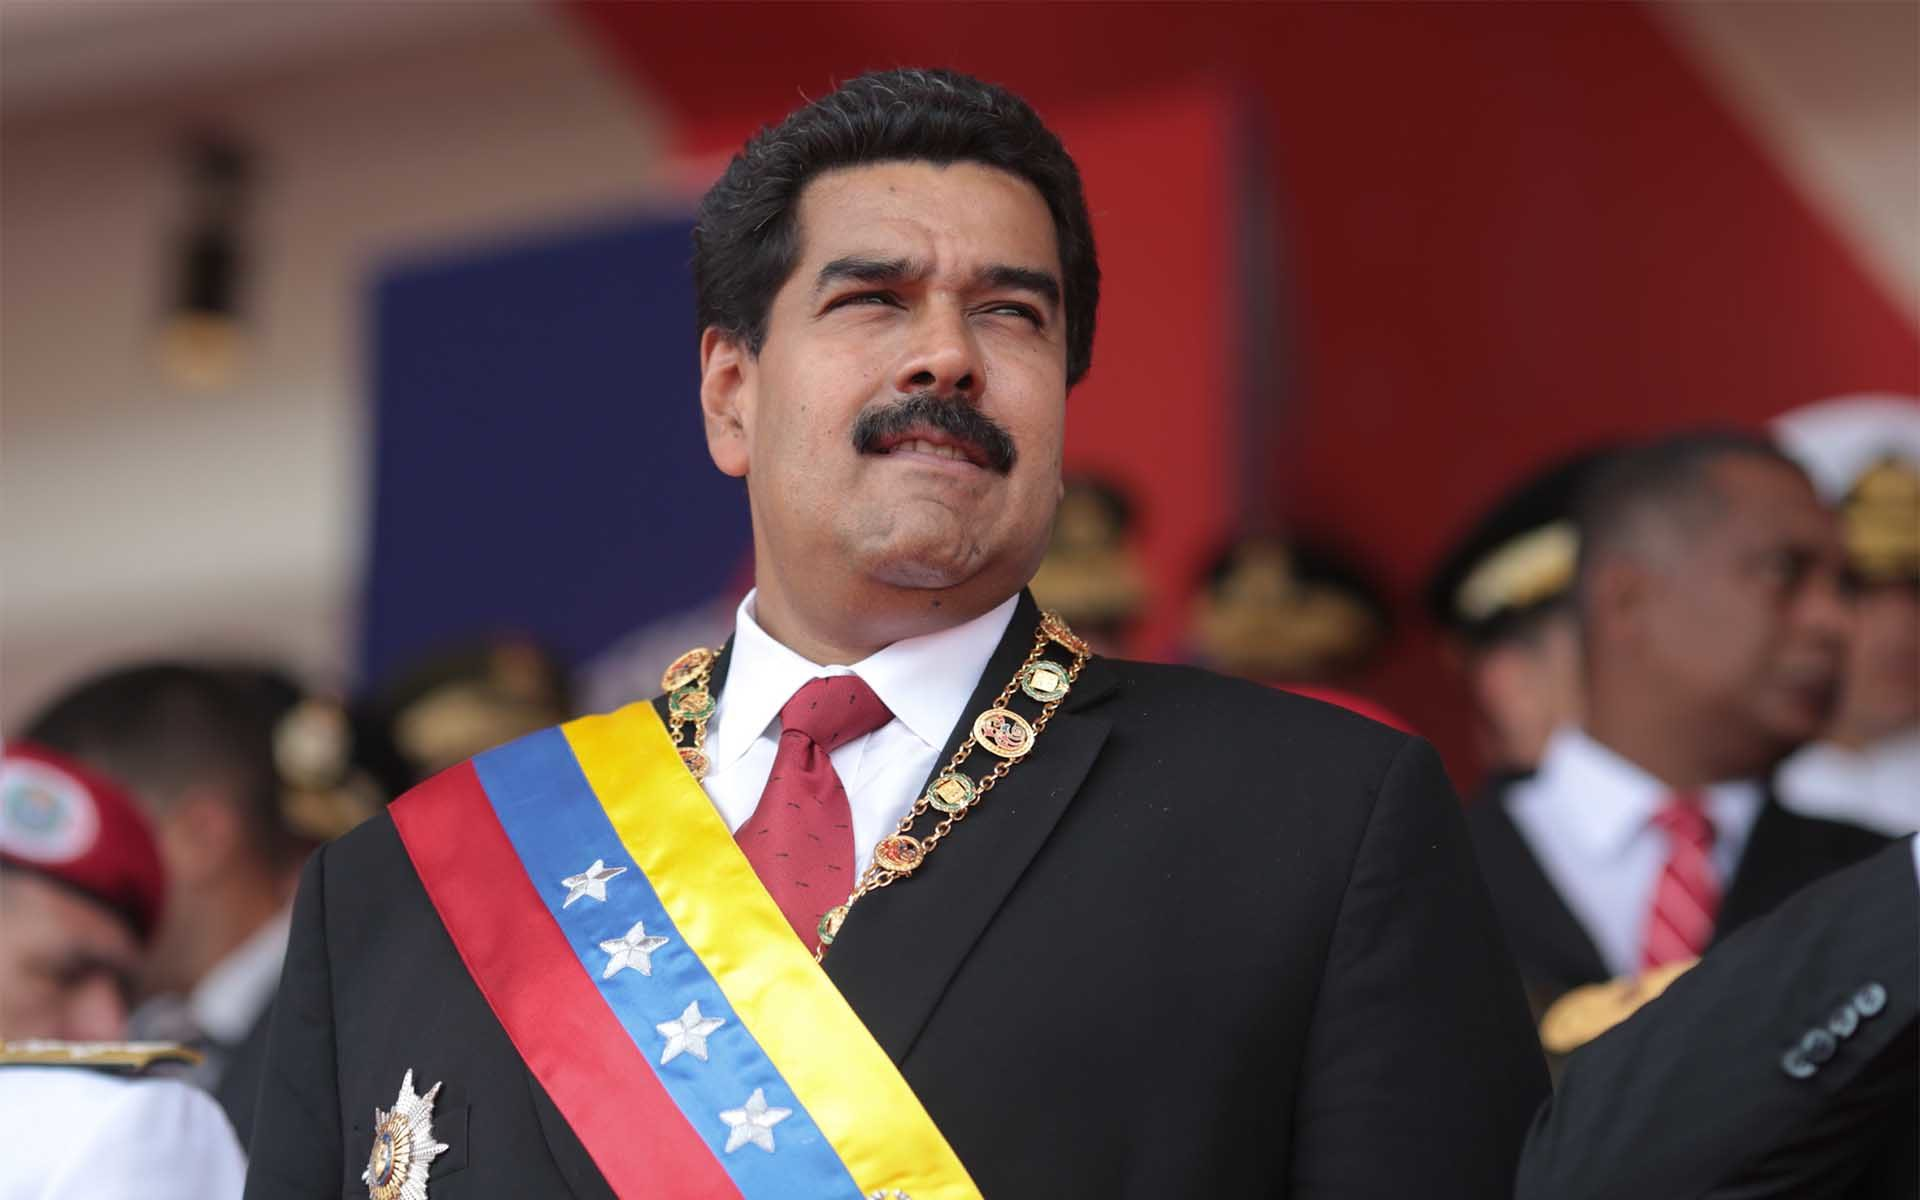 Venezuelan president arrives in Moscow seeking support